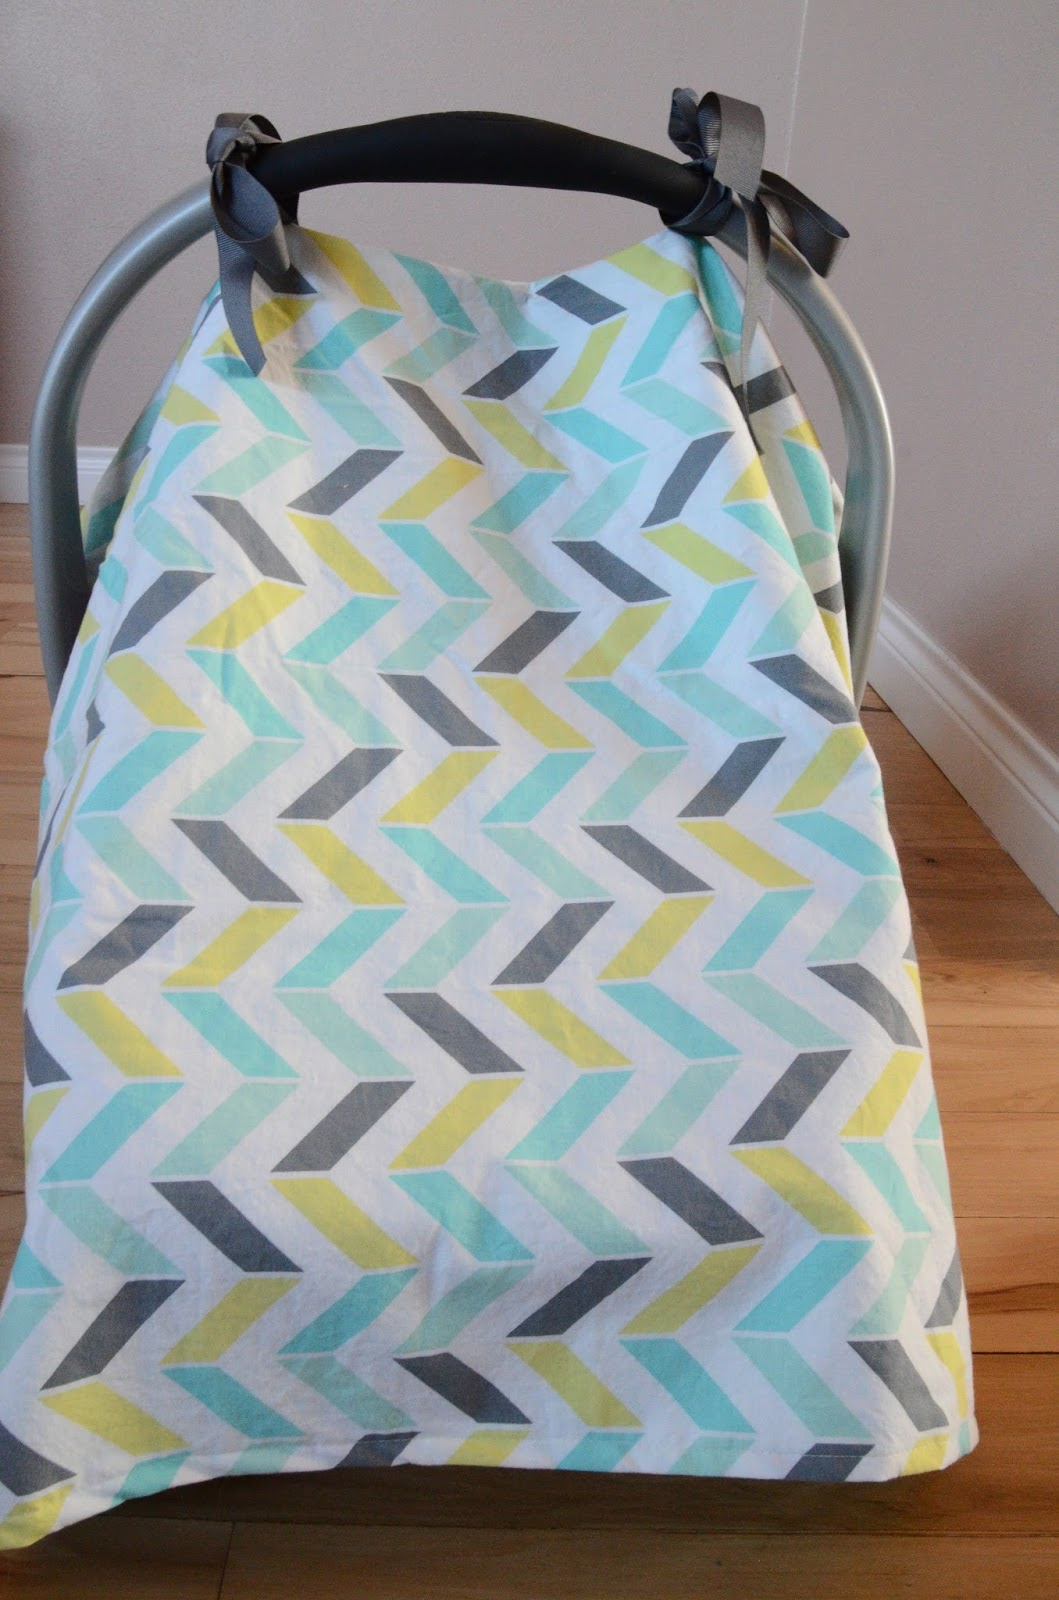 DIY Carseat Canopy and Baby Blanket & Zufelt u0026 Co. : DIY Carseat Canopy and Baby Blanket